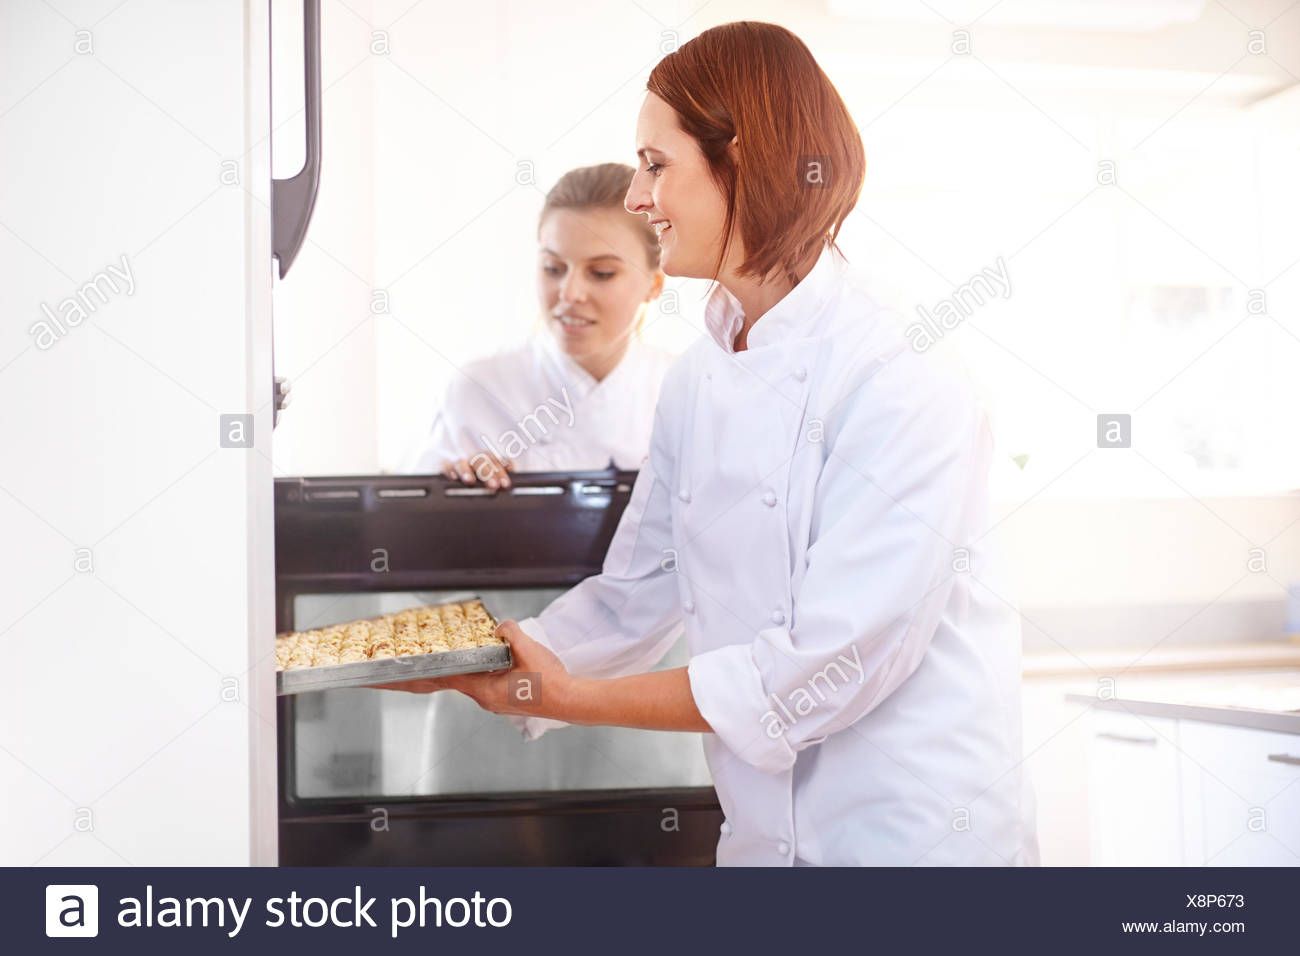 Chefs placing tray in oven - Stock Image